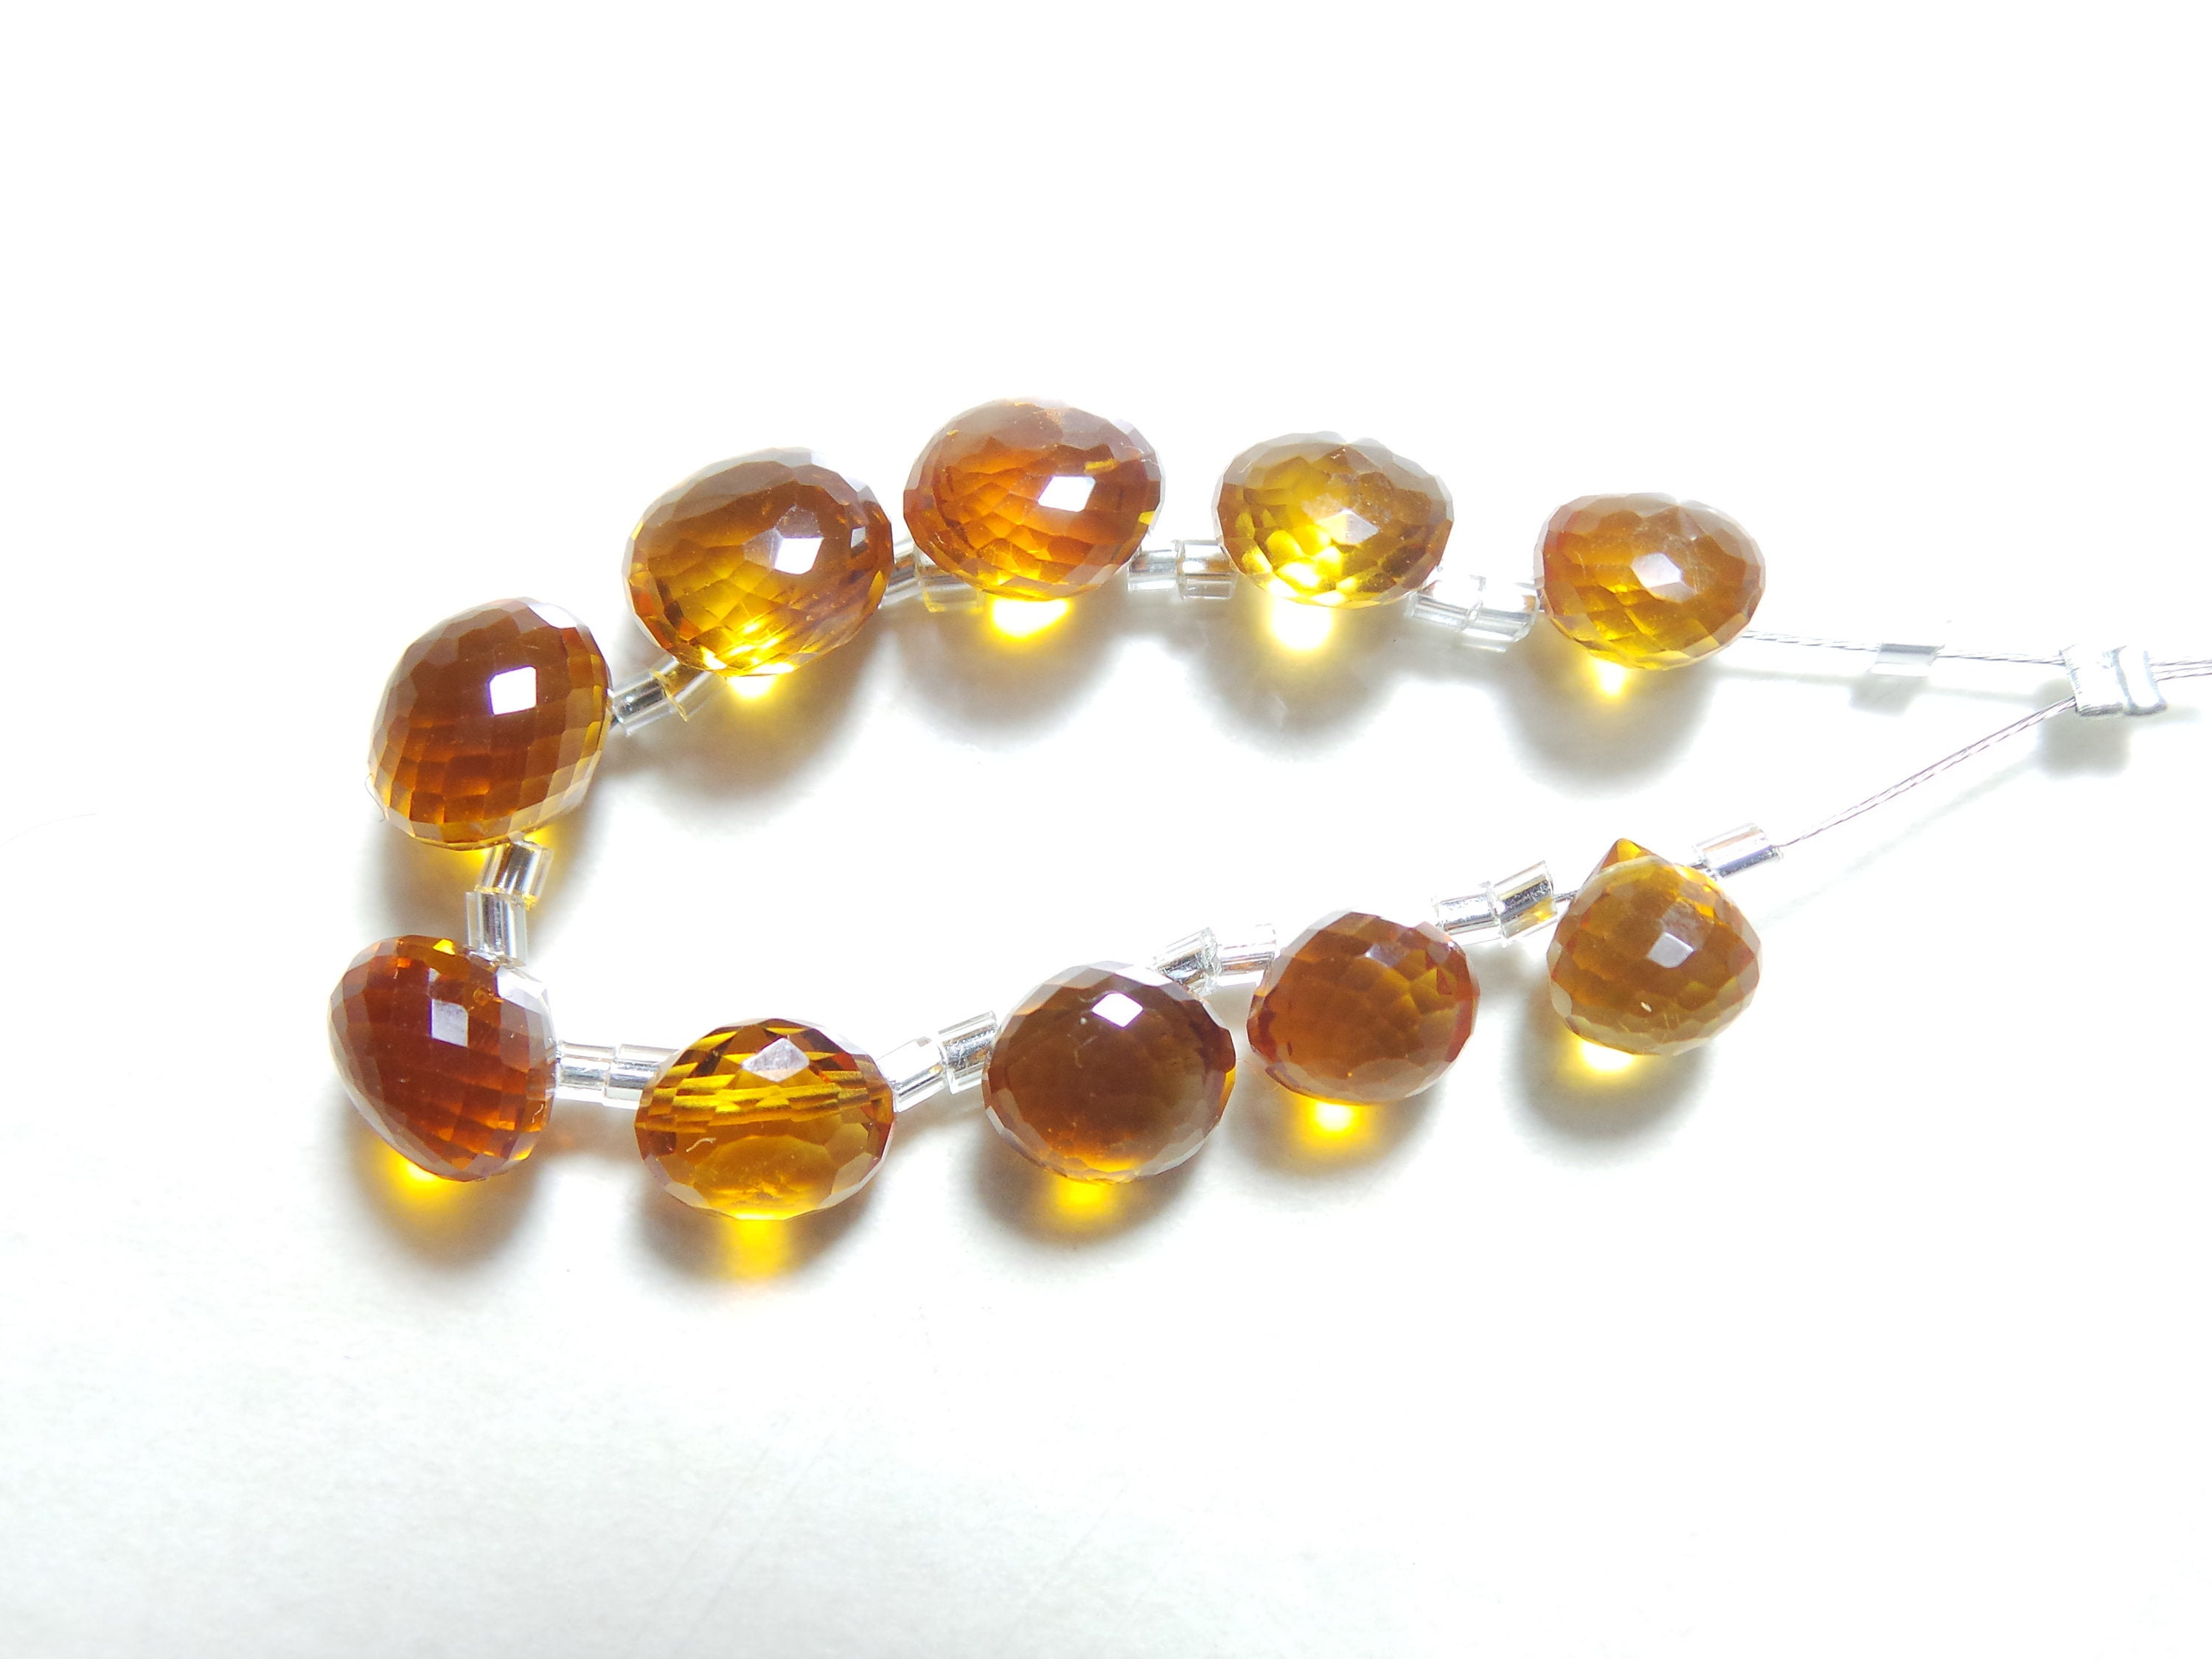 Citrine For Jewelry Making Loose Gemstone. 14 Pieces Natural Citrine Faceted Pear Shape Briolletes Gemstone Size -10.5x7.5-7x5 MM Approx